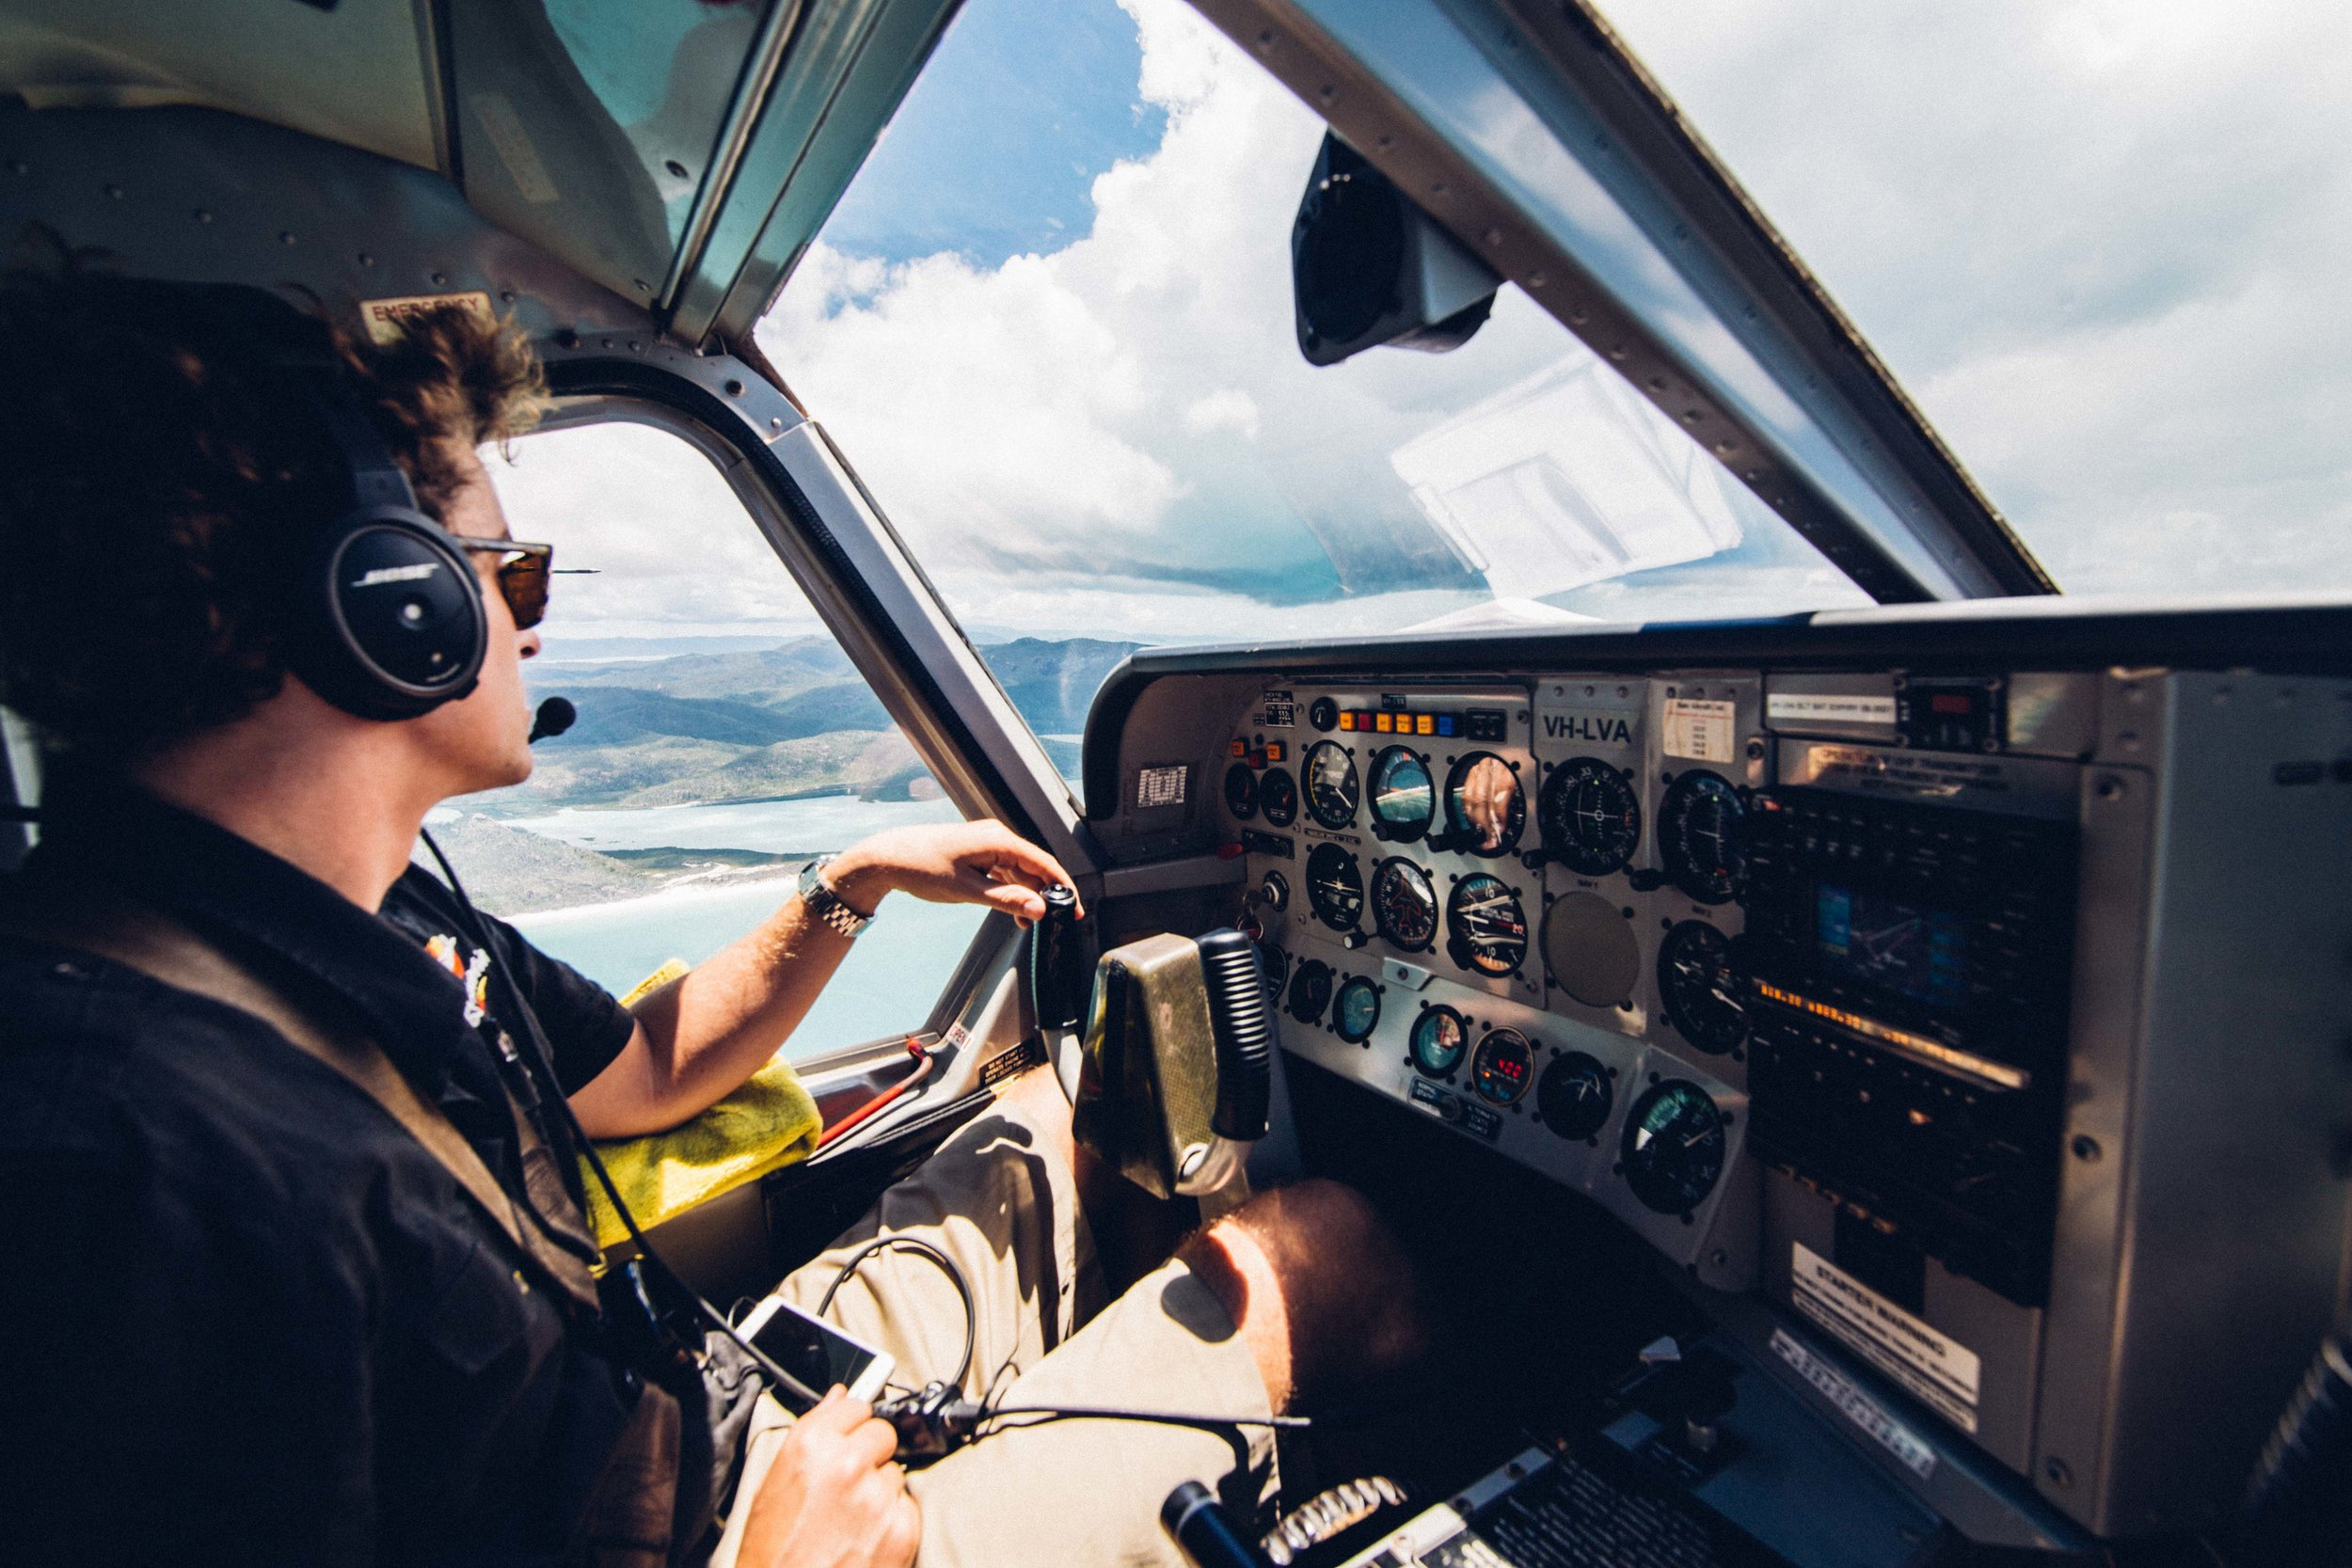 Inside the plane when flying over the Whitsundays. Photo: Marine Raynard.